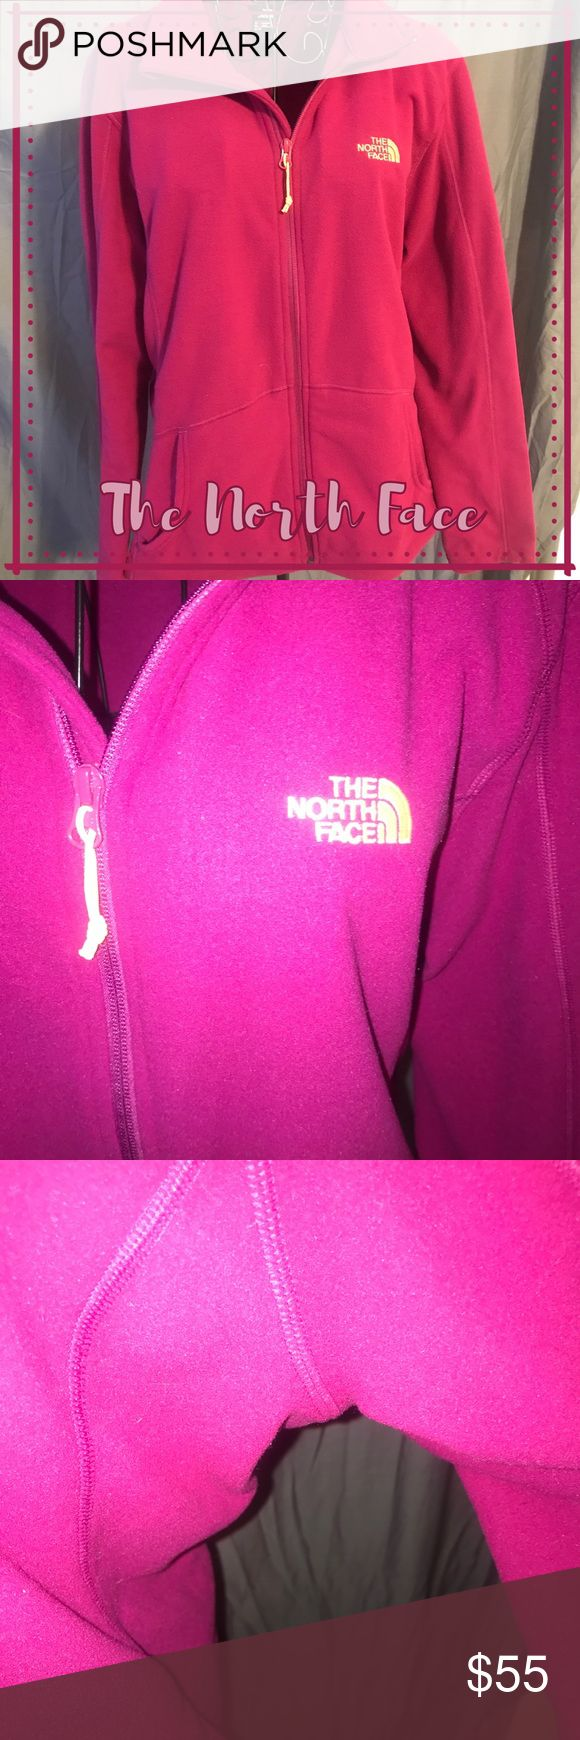 North Face Zip Up Beautiful North Face zip up. Women's size XL. Only worn one time. In perfect condition. Super cool color (kind of a magenta purple color with neon orange/pink accents). The North Face Sweaters